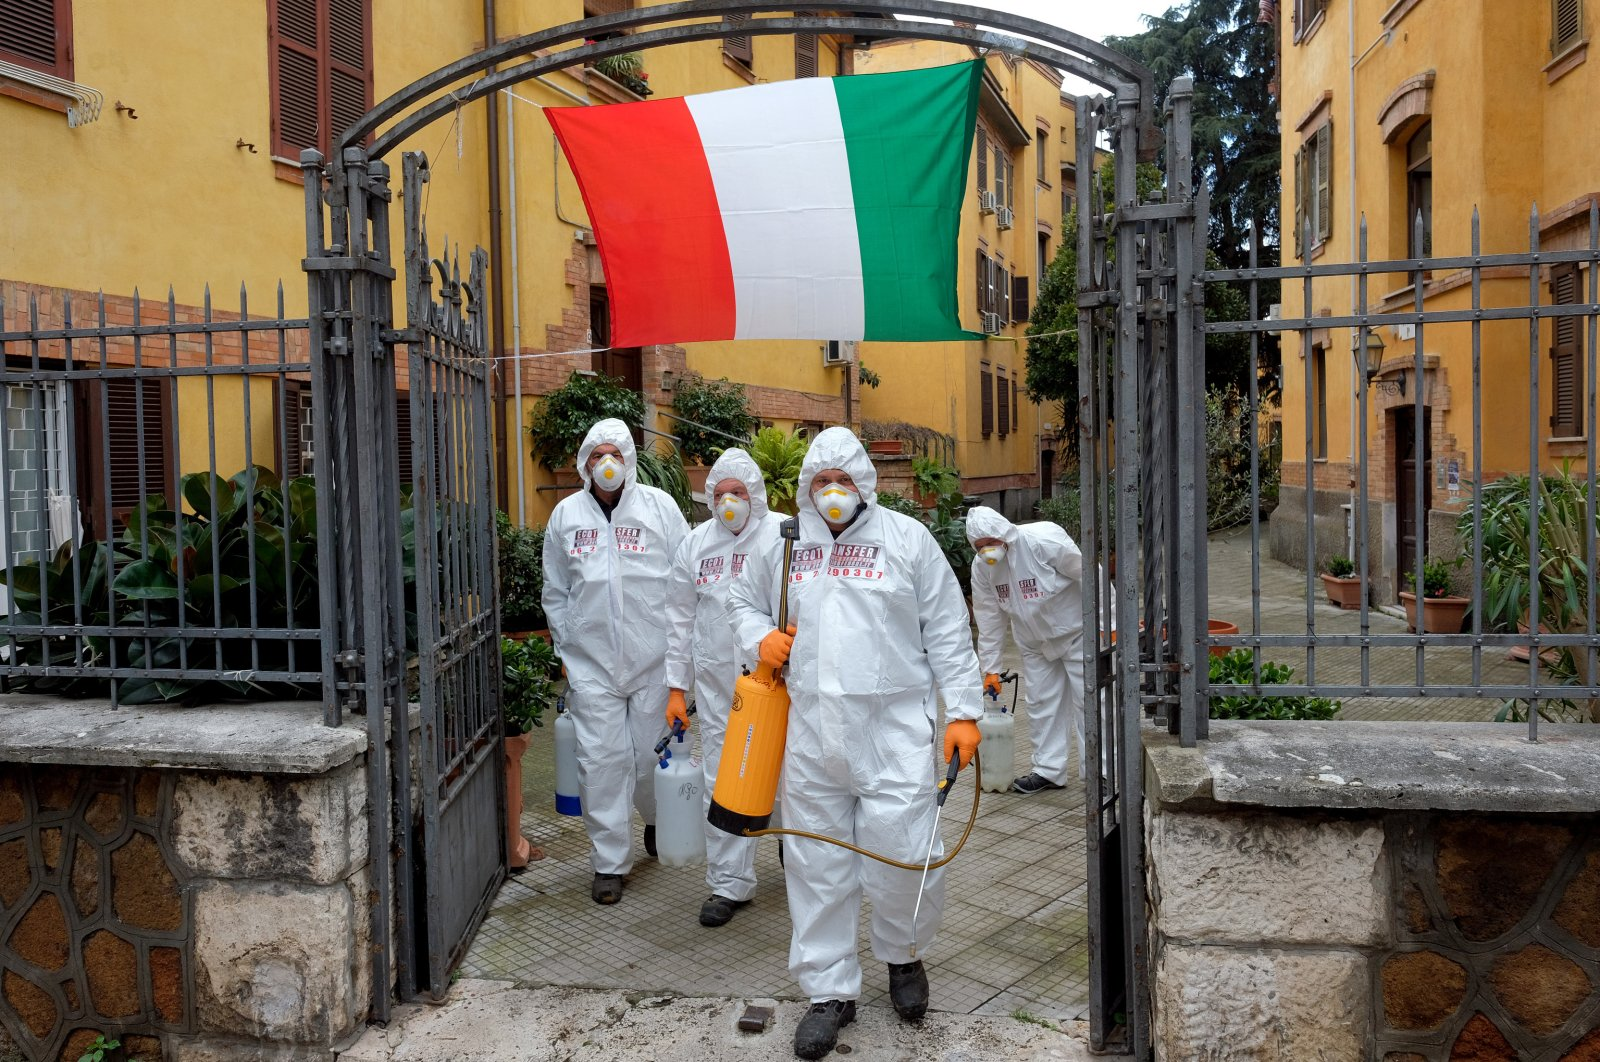 Workers wearing protective outfits sanitize a neighborhood to contain the spread of the coronavirus, Rome, Saturday, March 28, 2020. (AP Photo)